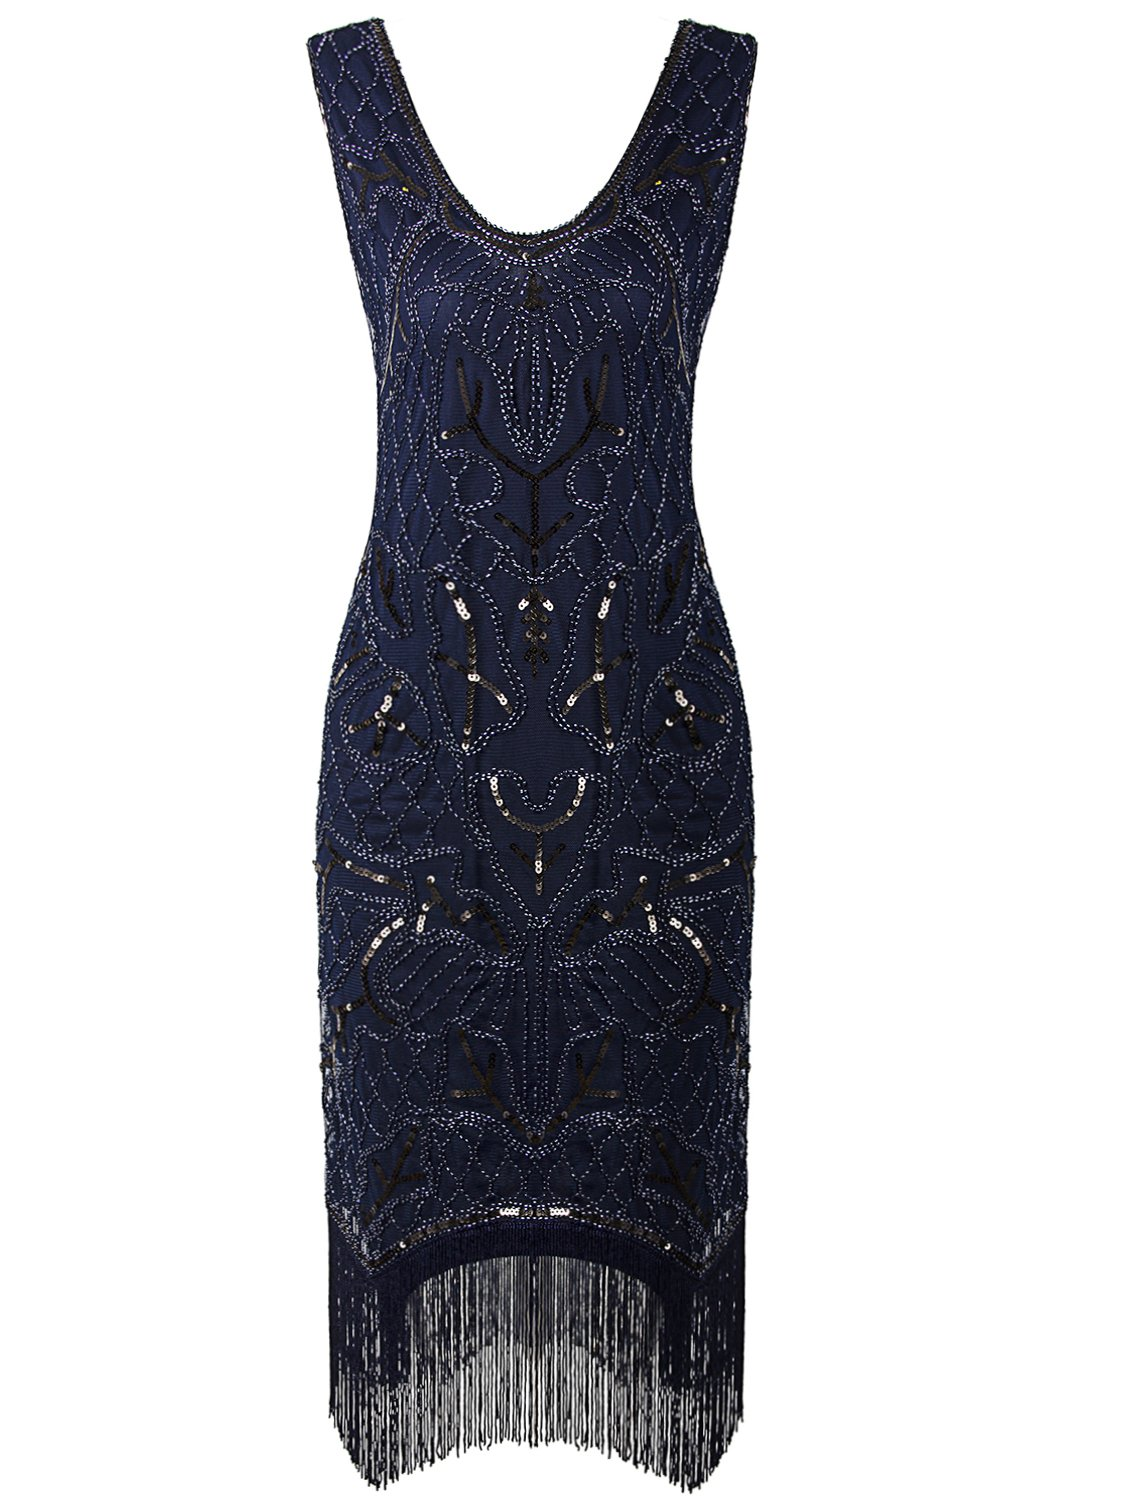 Available at Amazon: VIJIV Women's 1920s Flapper Dress Art Nouveau Great Gatsby Fringe Cocktail Dress